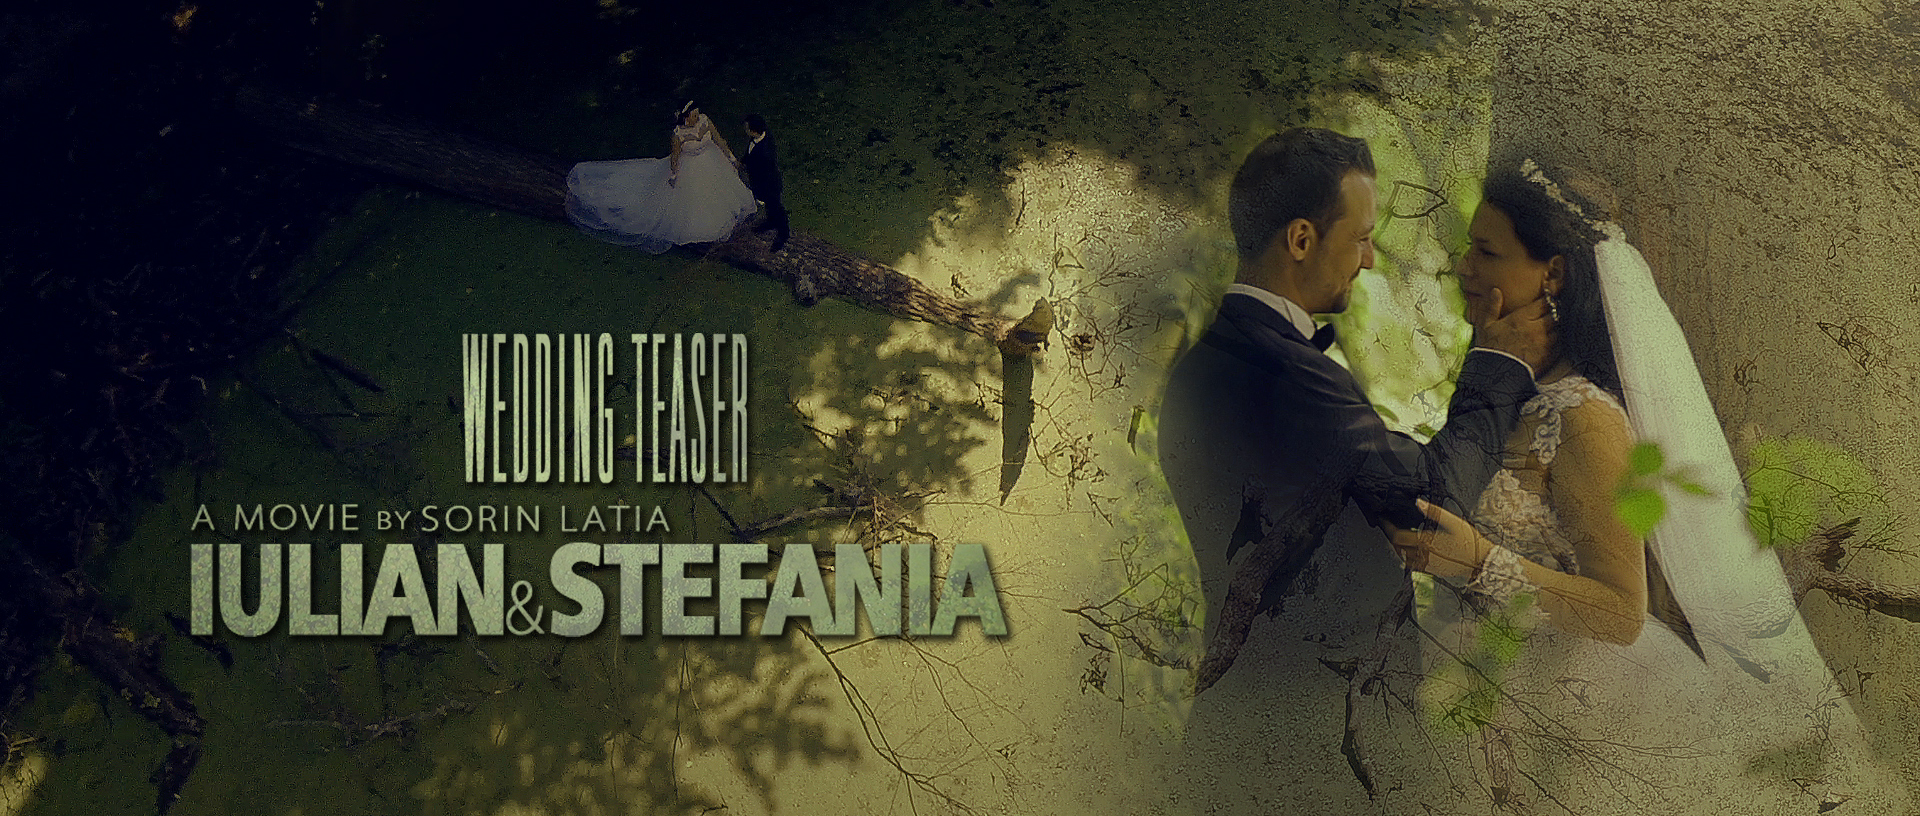 wedding-teaser-iulian-stefania-facebook